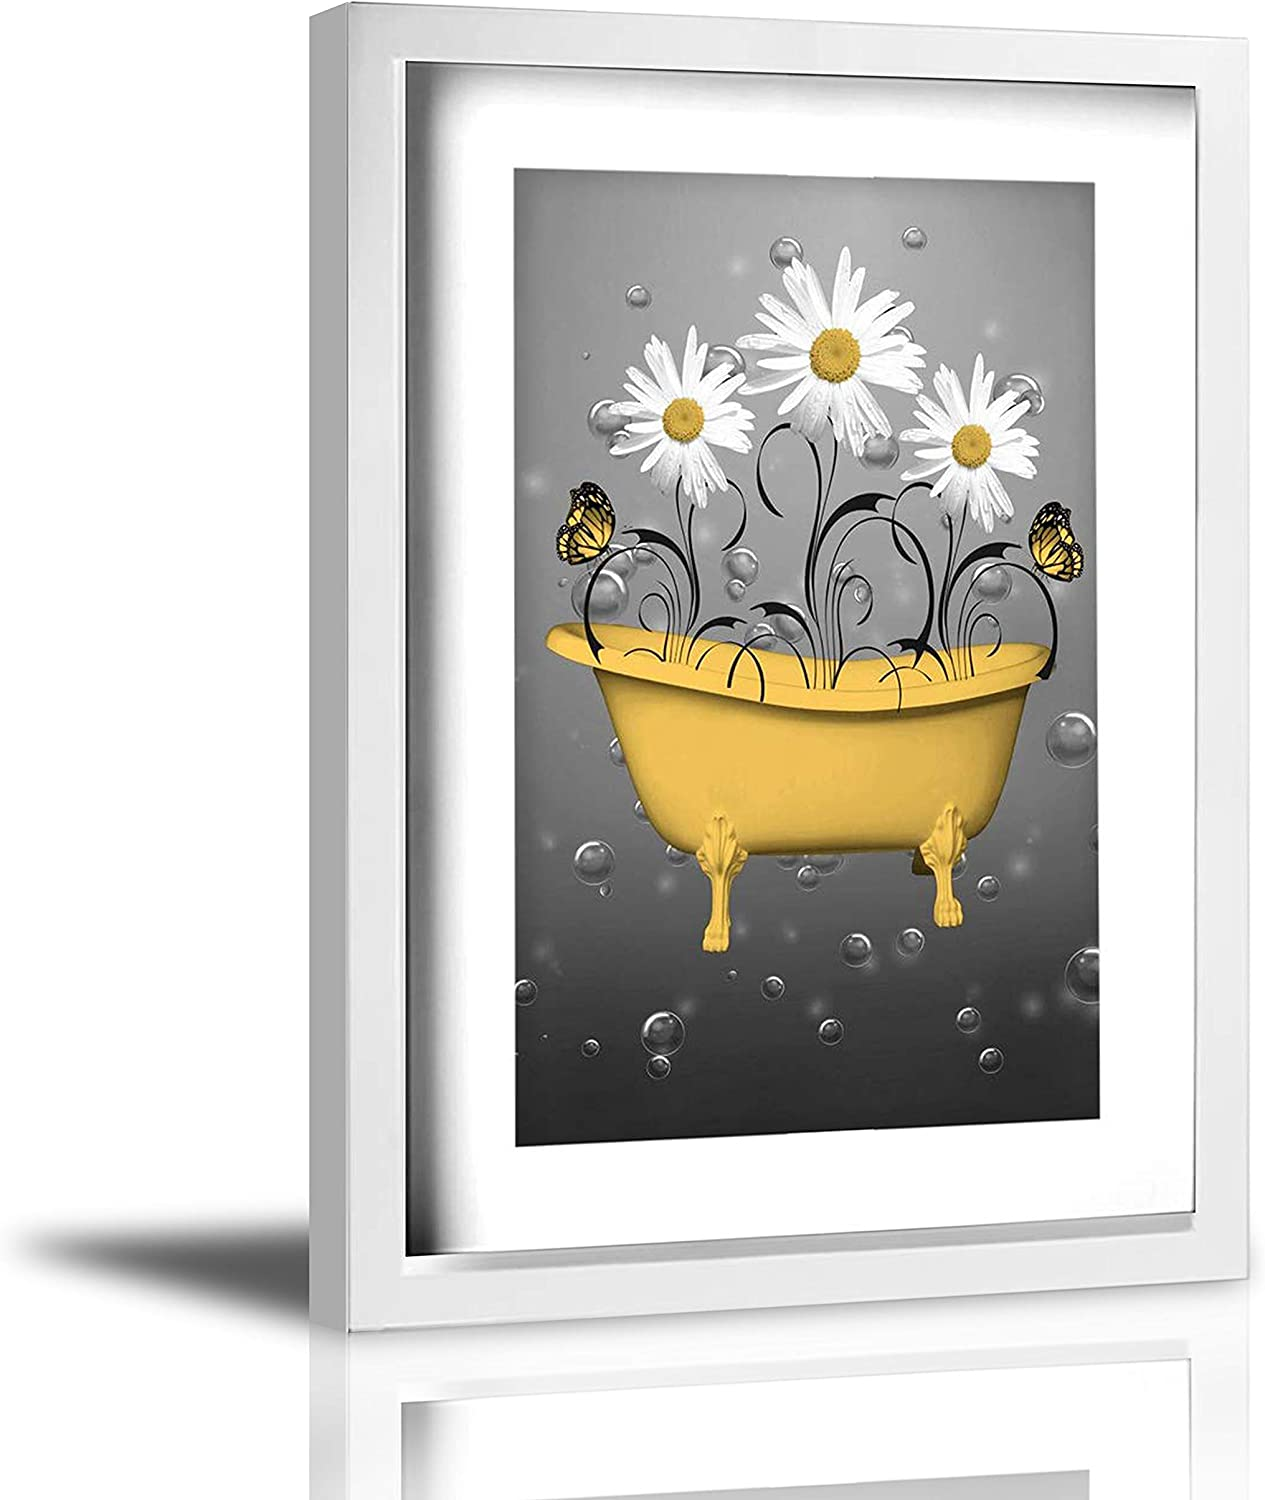 Coolertaste Yellow Daisy Flowers Butterflies Bubbles Bathtub Rustic Canvas Wall Art Prints Framed Picture Wall Decor Vintage Bathroom Decor Ready To Hang 9